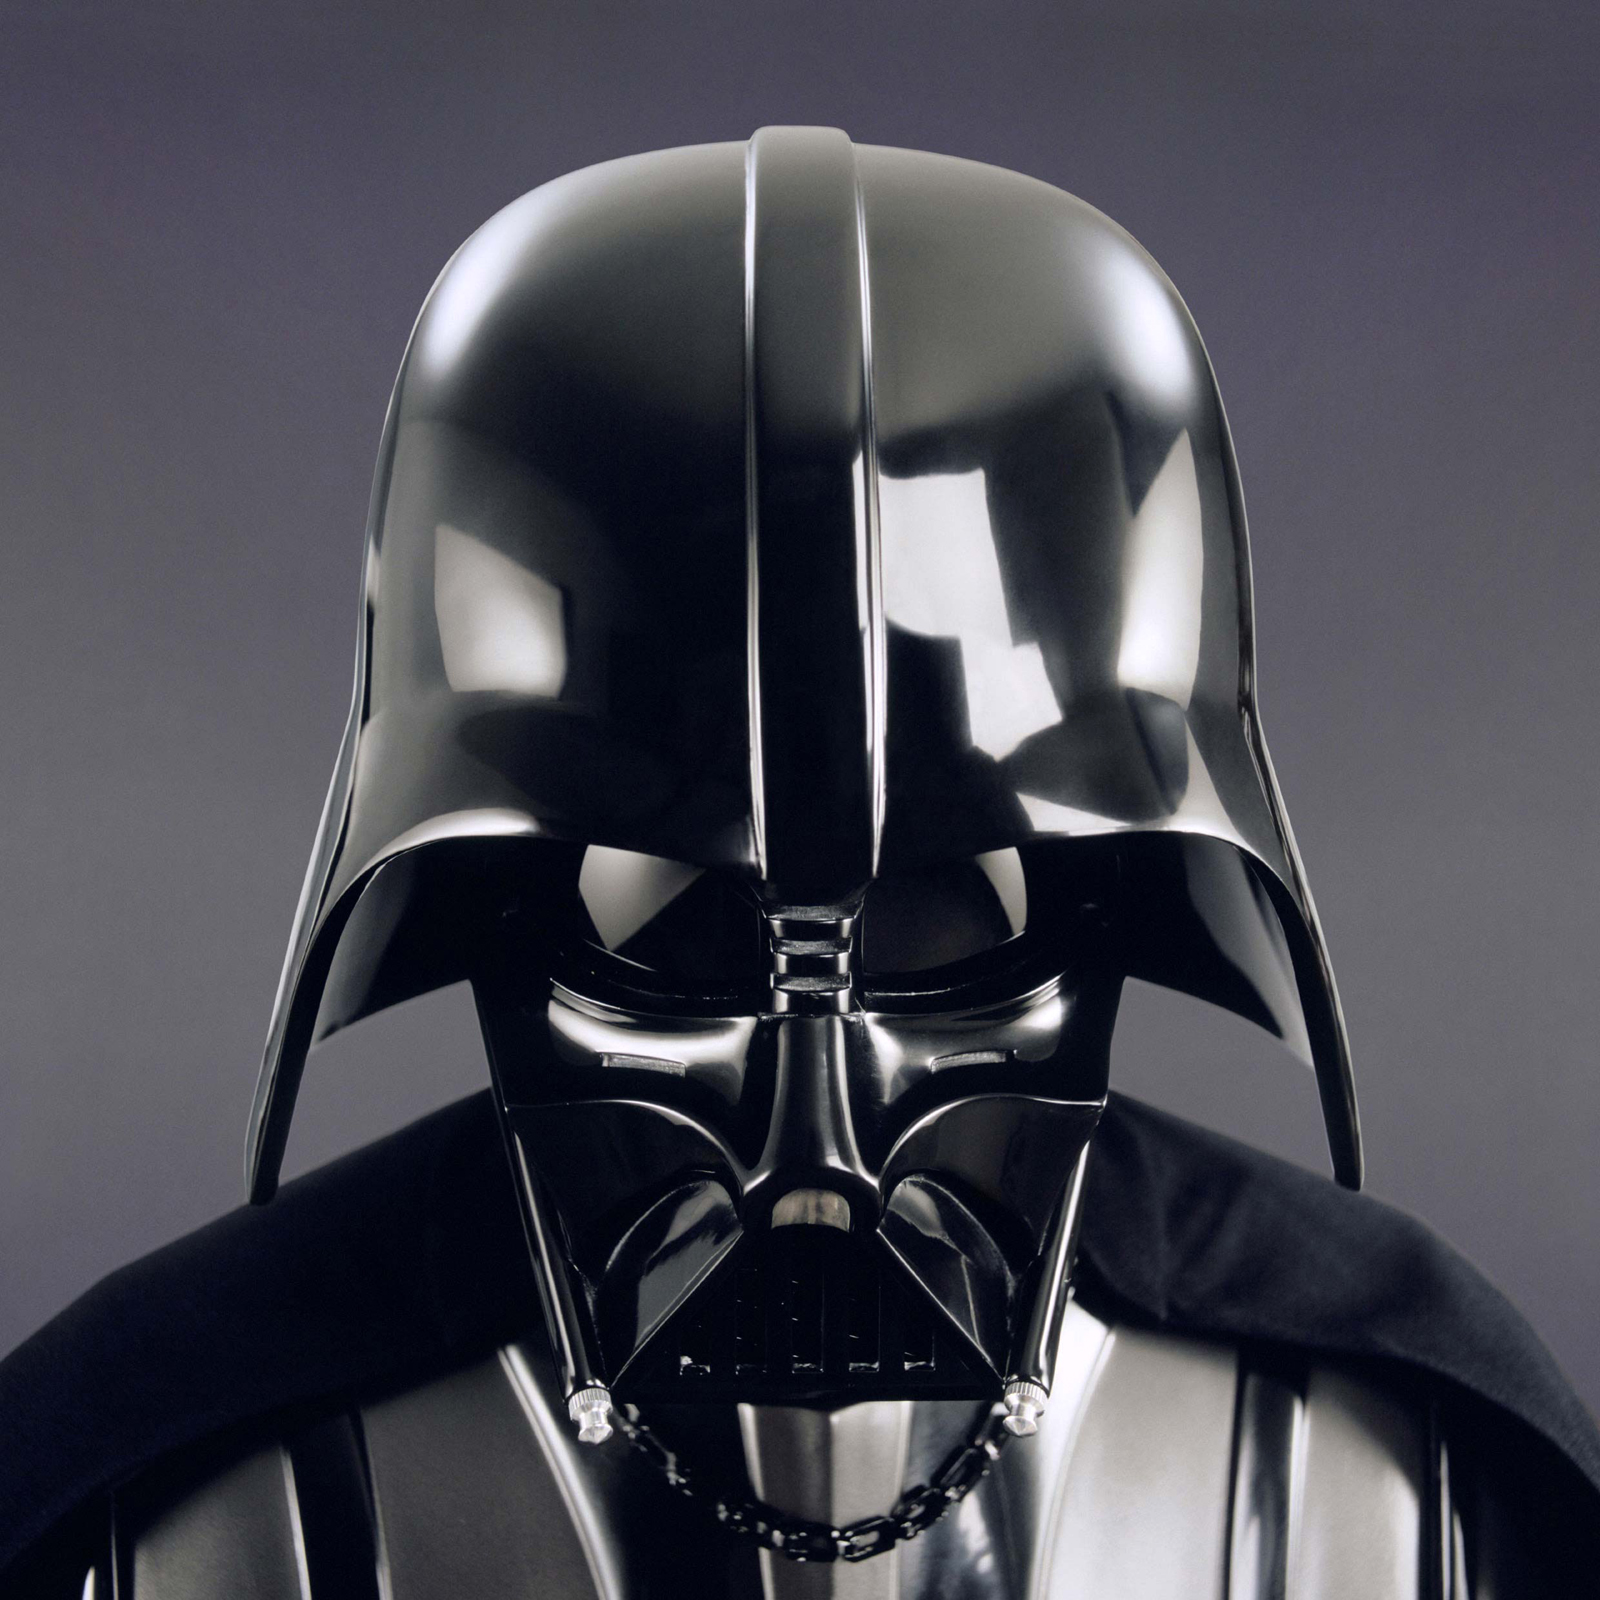 Death Star PR: An Open Letter To TIME Magazine Re: Darth Vader